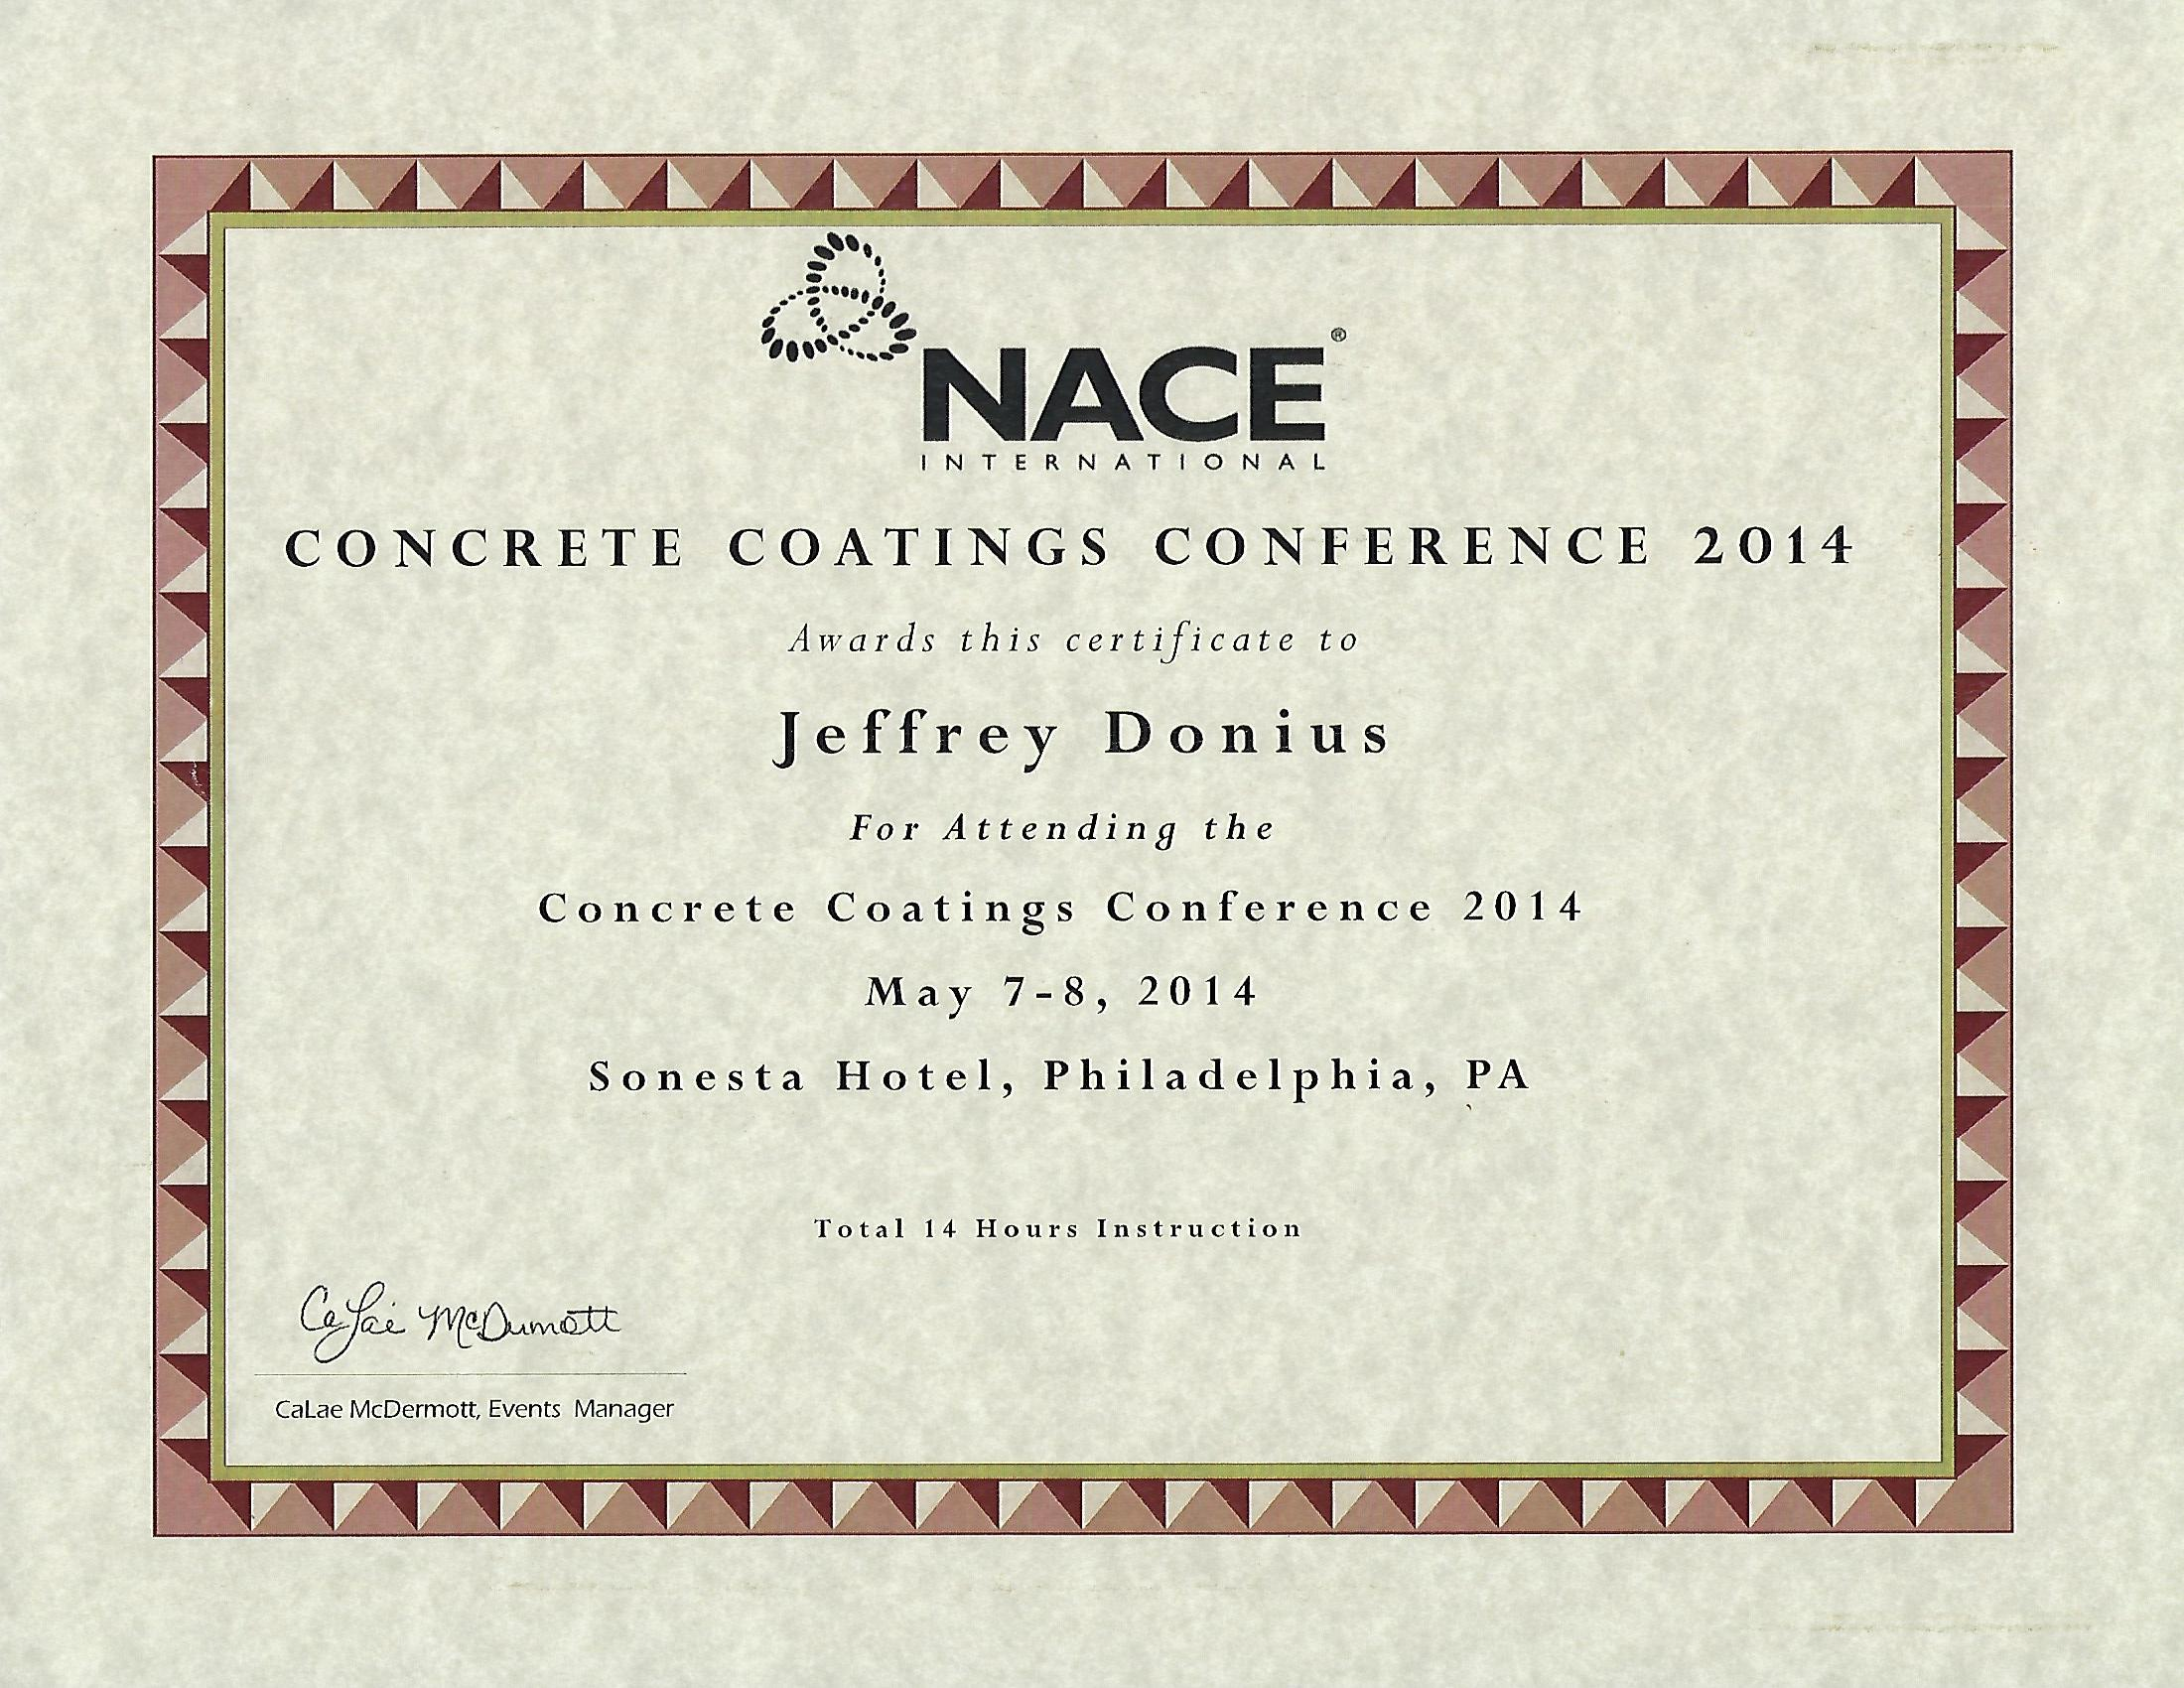 2014 Concrete Coatings Certificate From NACE International